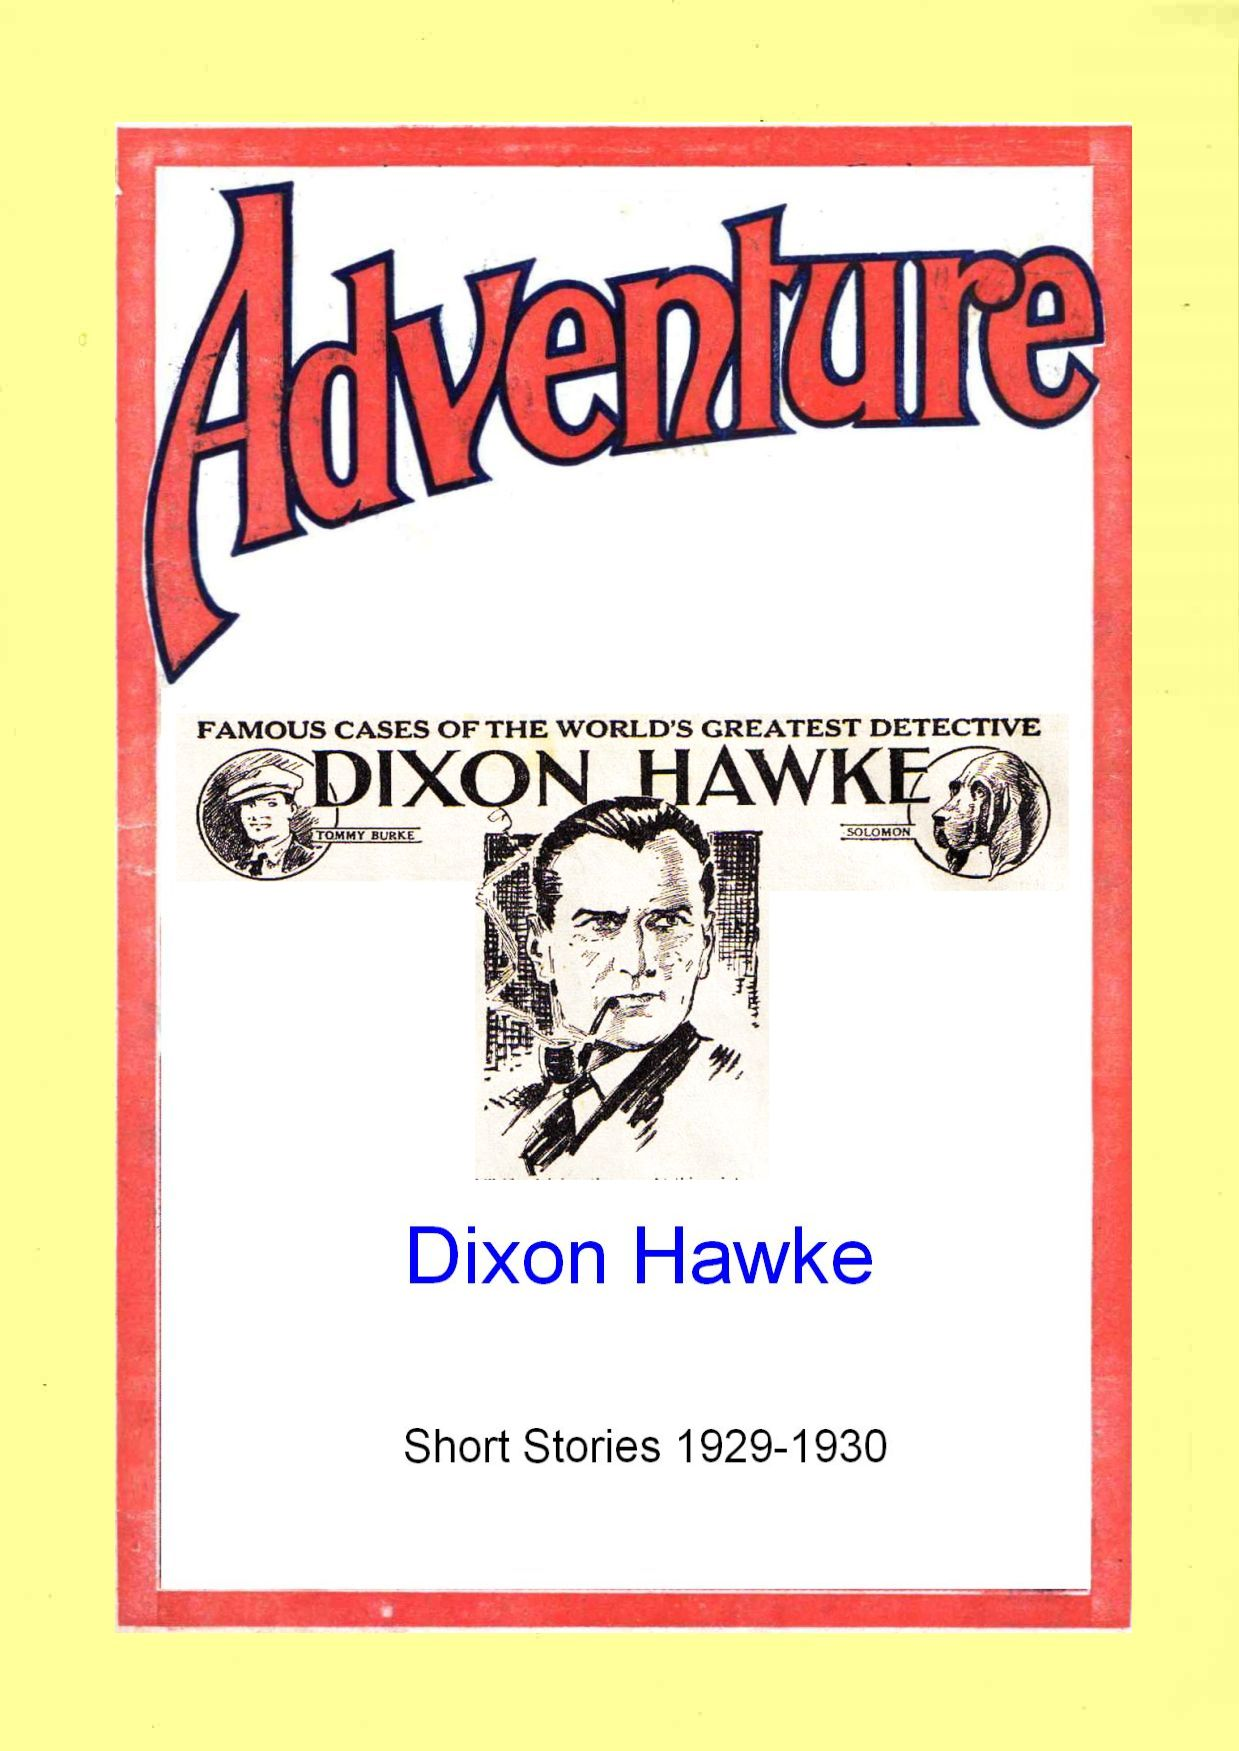 Comic Book Cover For Dixon Hawke Short Stories 1929-30